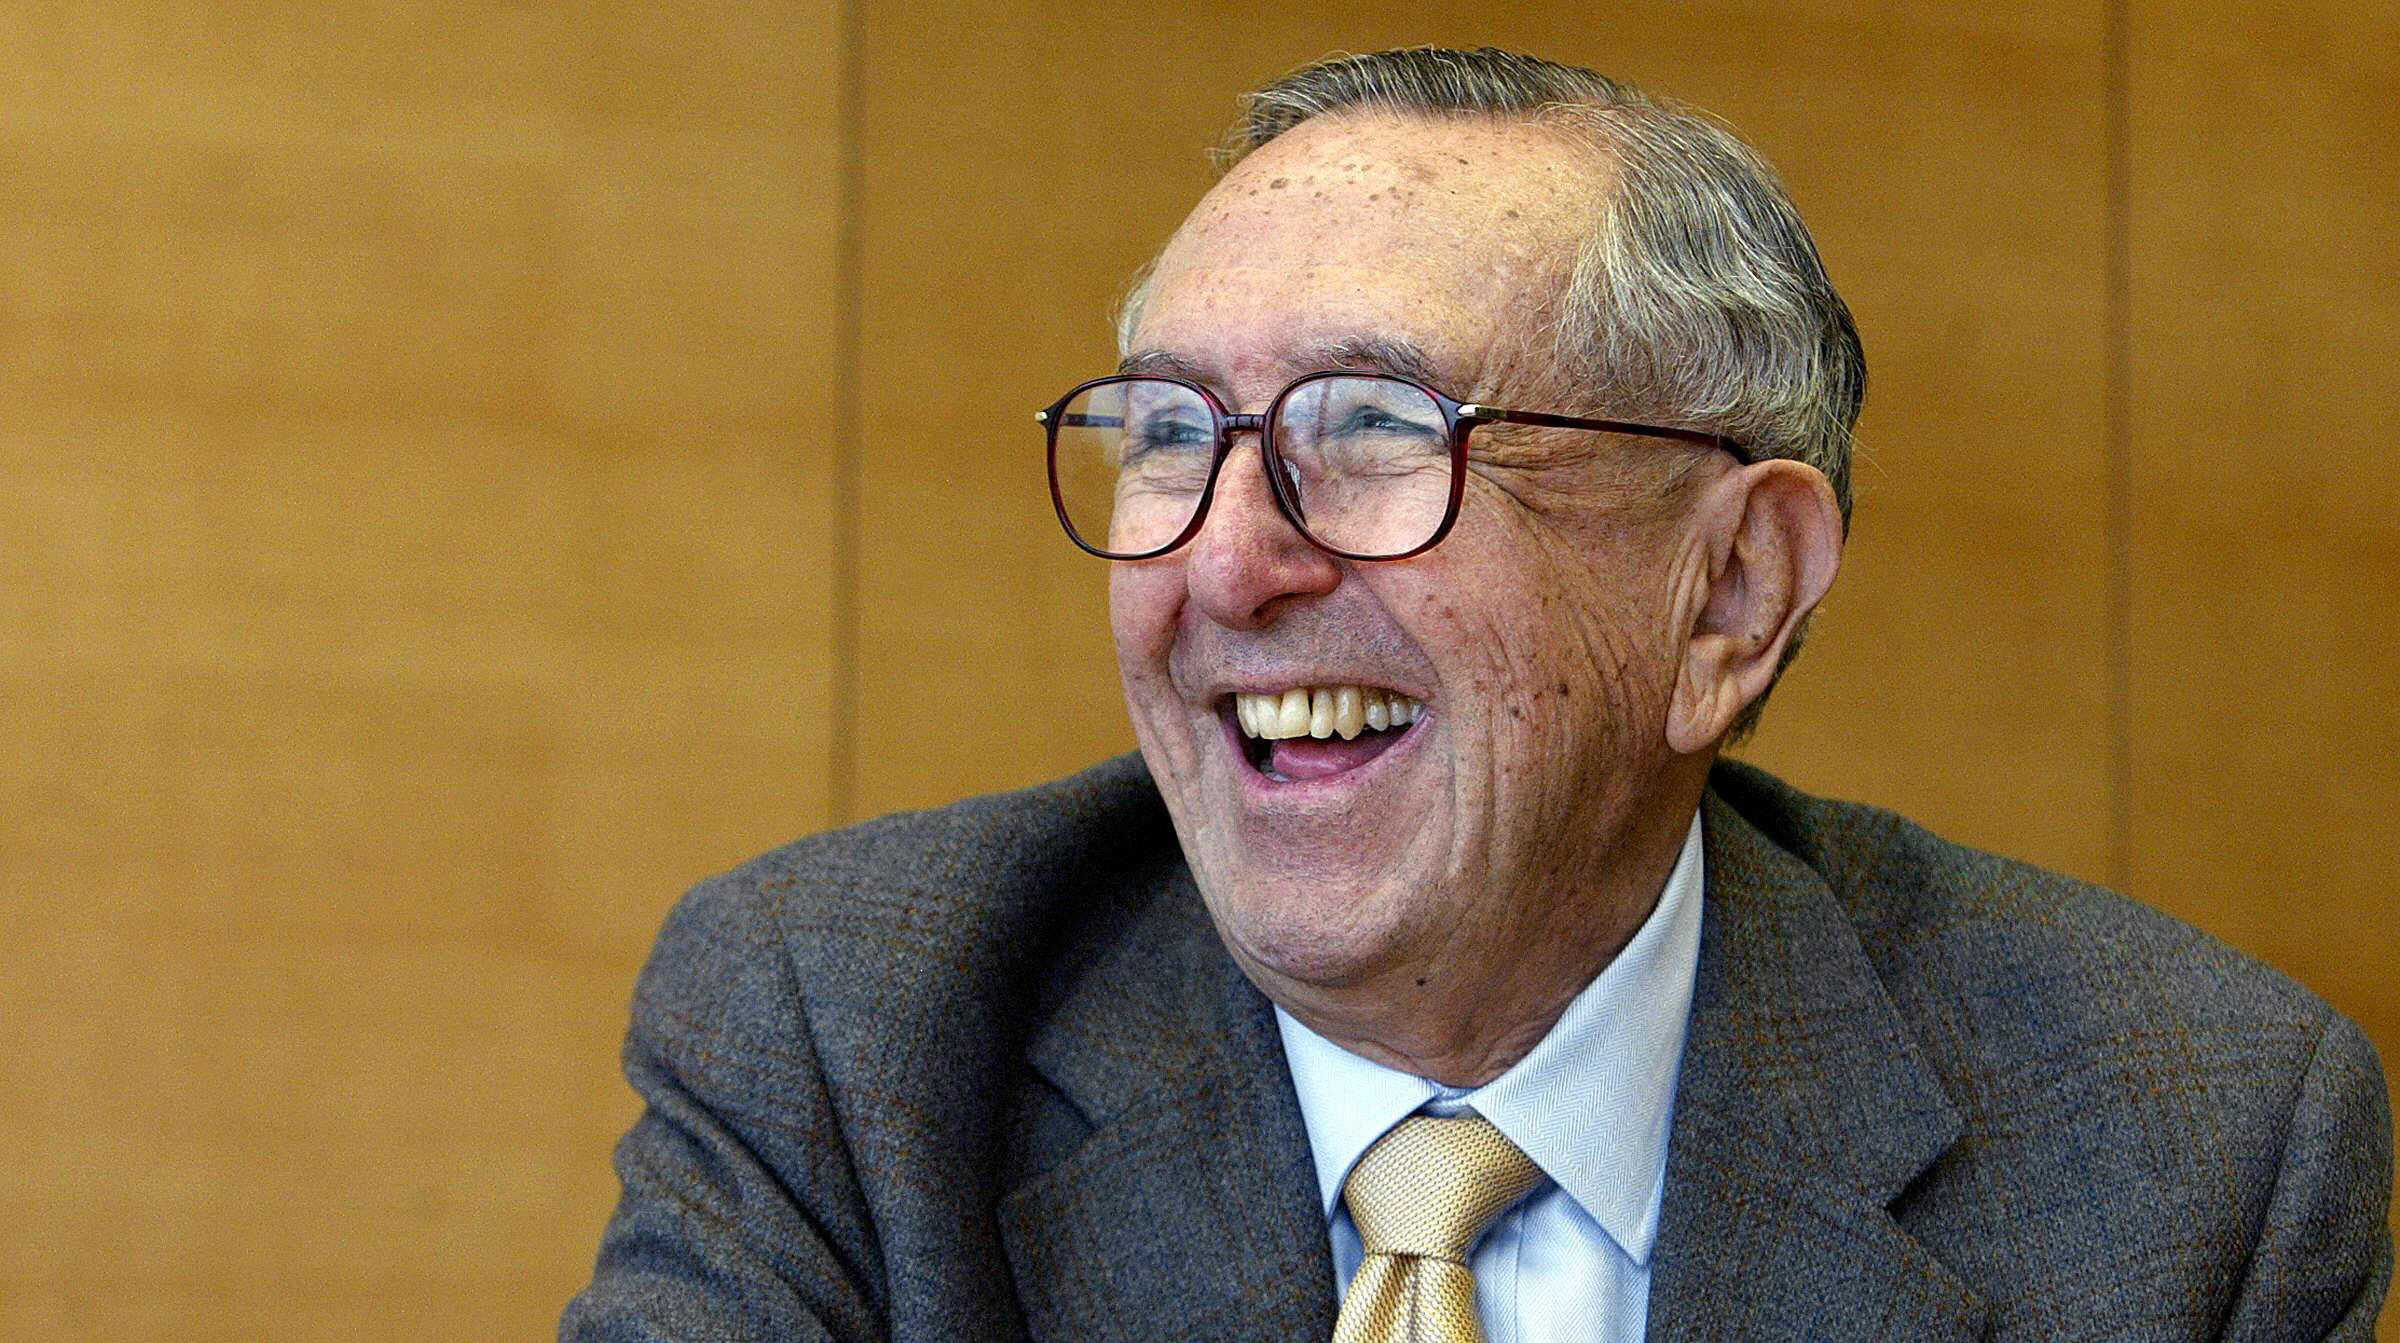 Cesar Pelli smiles during an interview with AFP in Hong Kong on March 17, 2005.(Credit: Philippe Lopez/AFP/Getty Images)